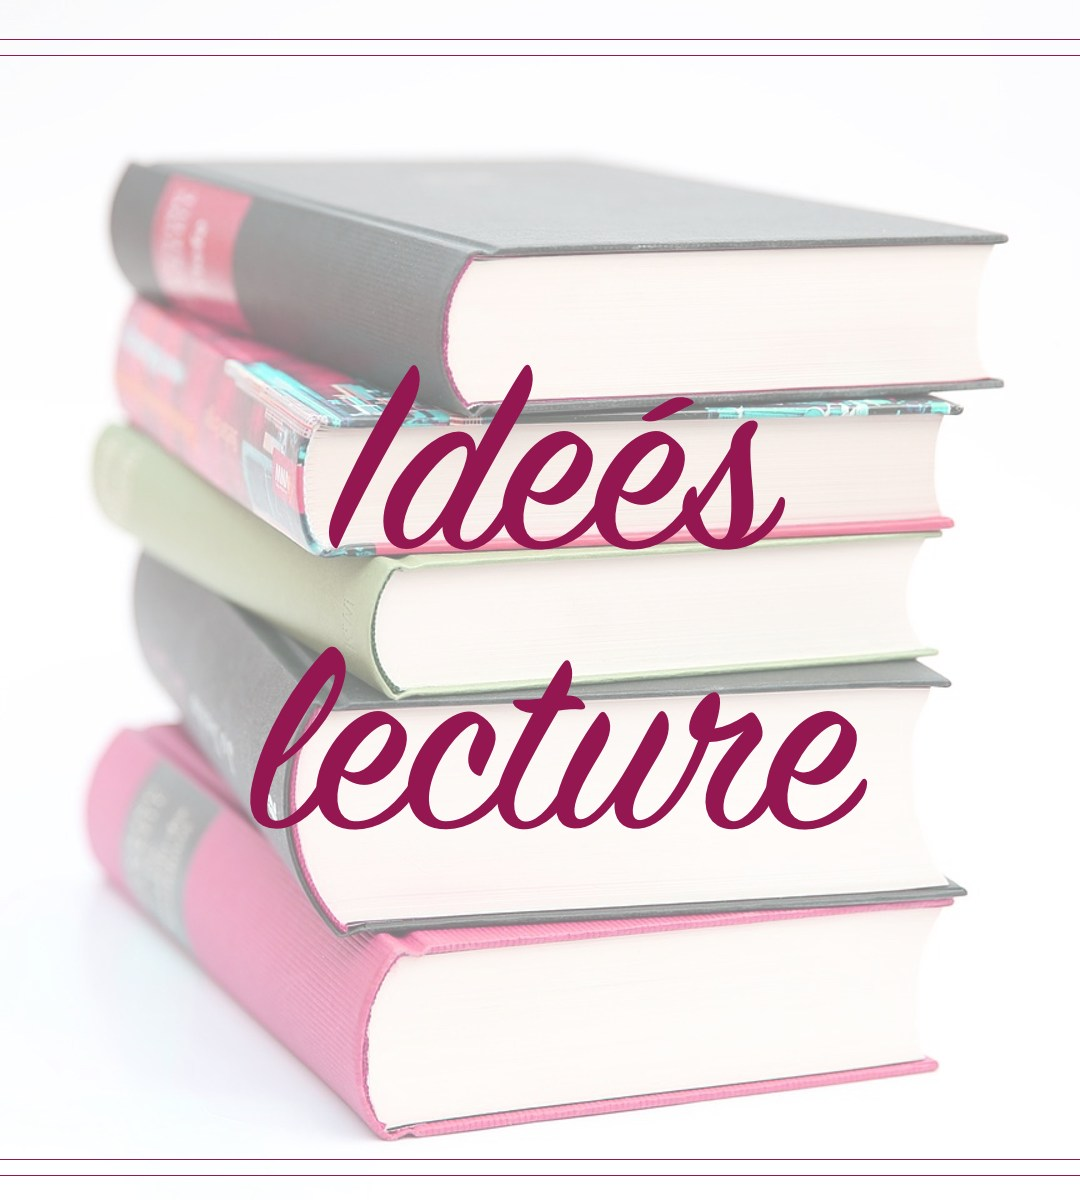 Idees-lectures